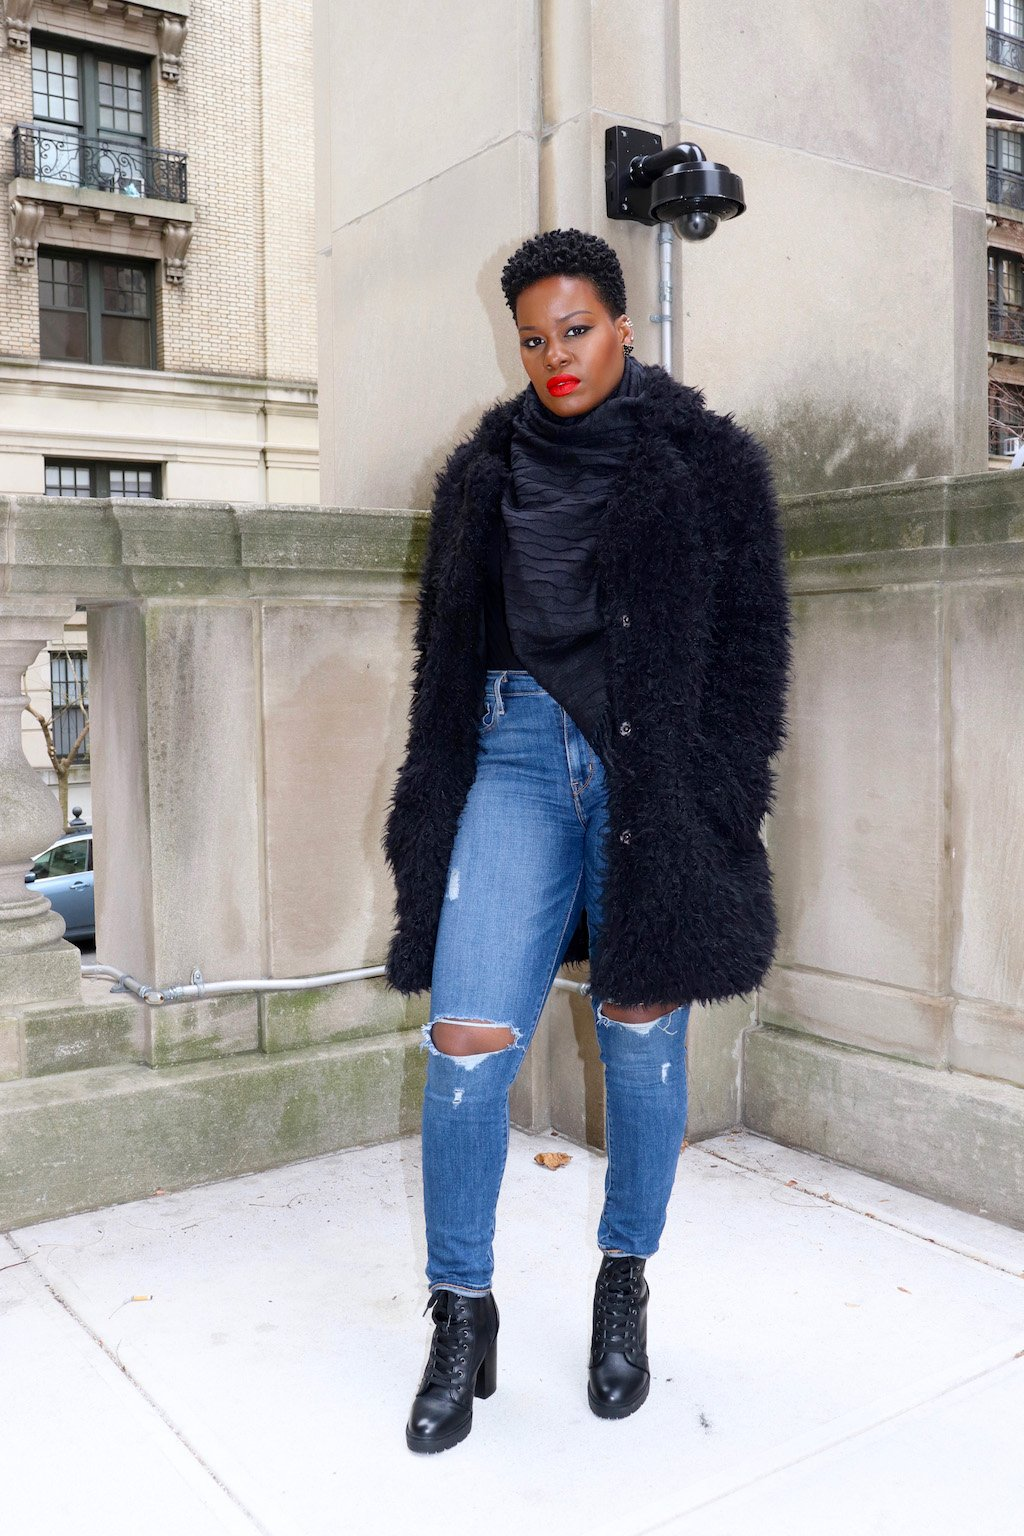 How To Fashionably Brave The Cold at NYFW